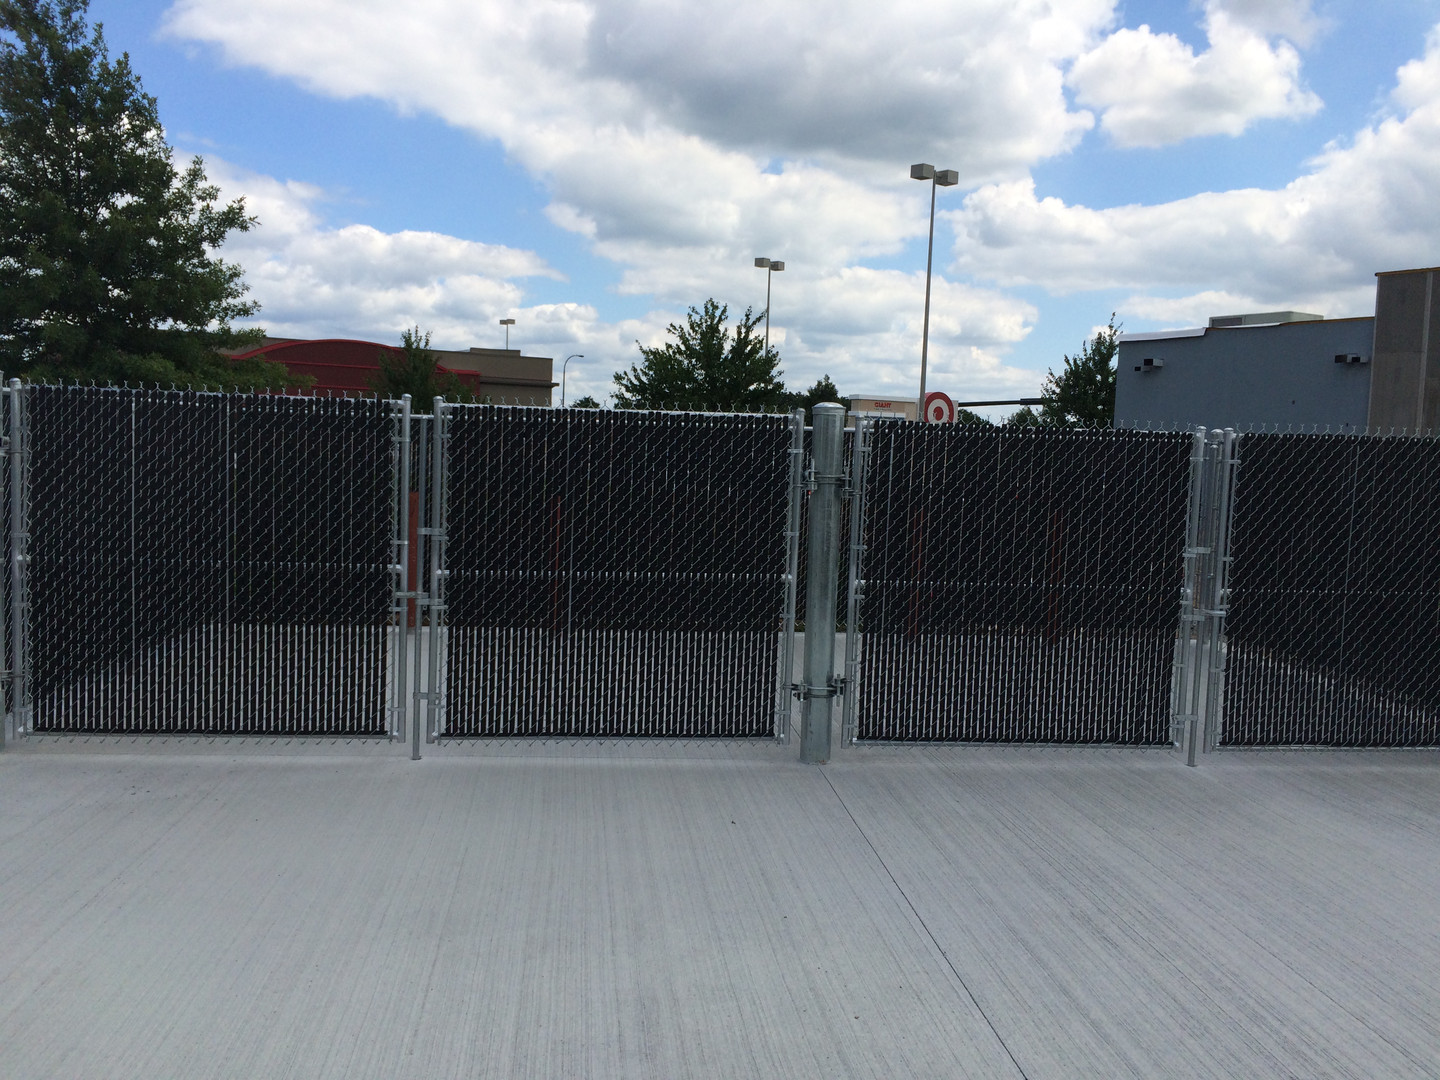 Vinyl Chain Link System with Privacy Slats